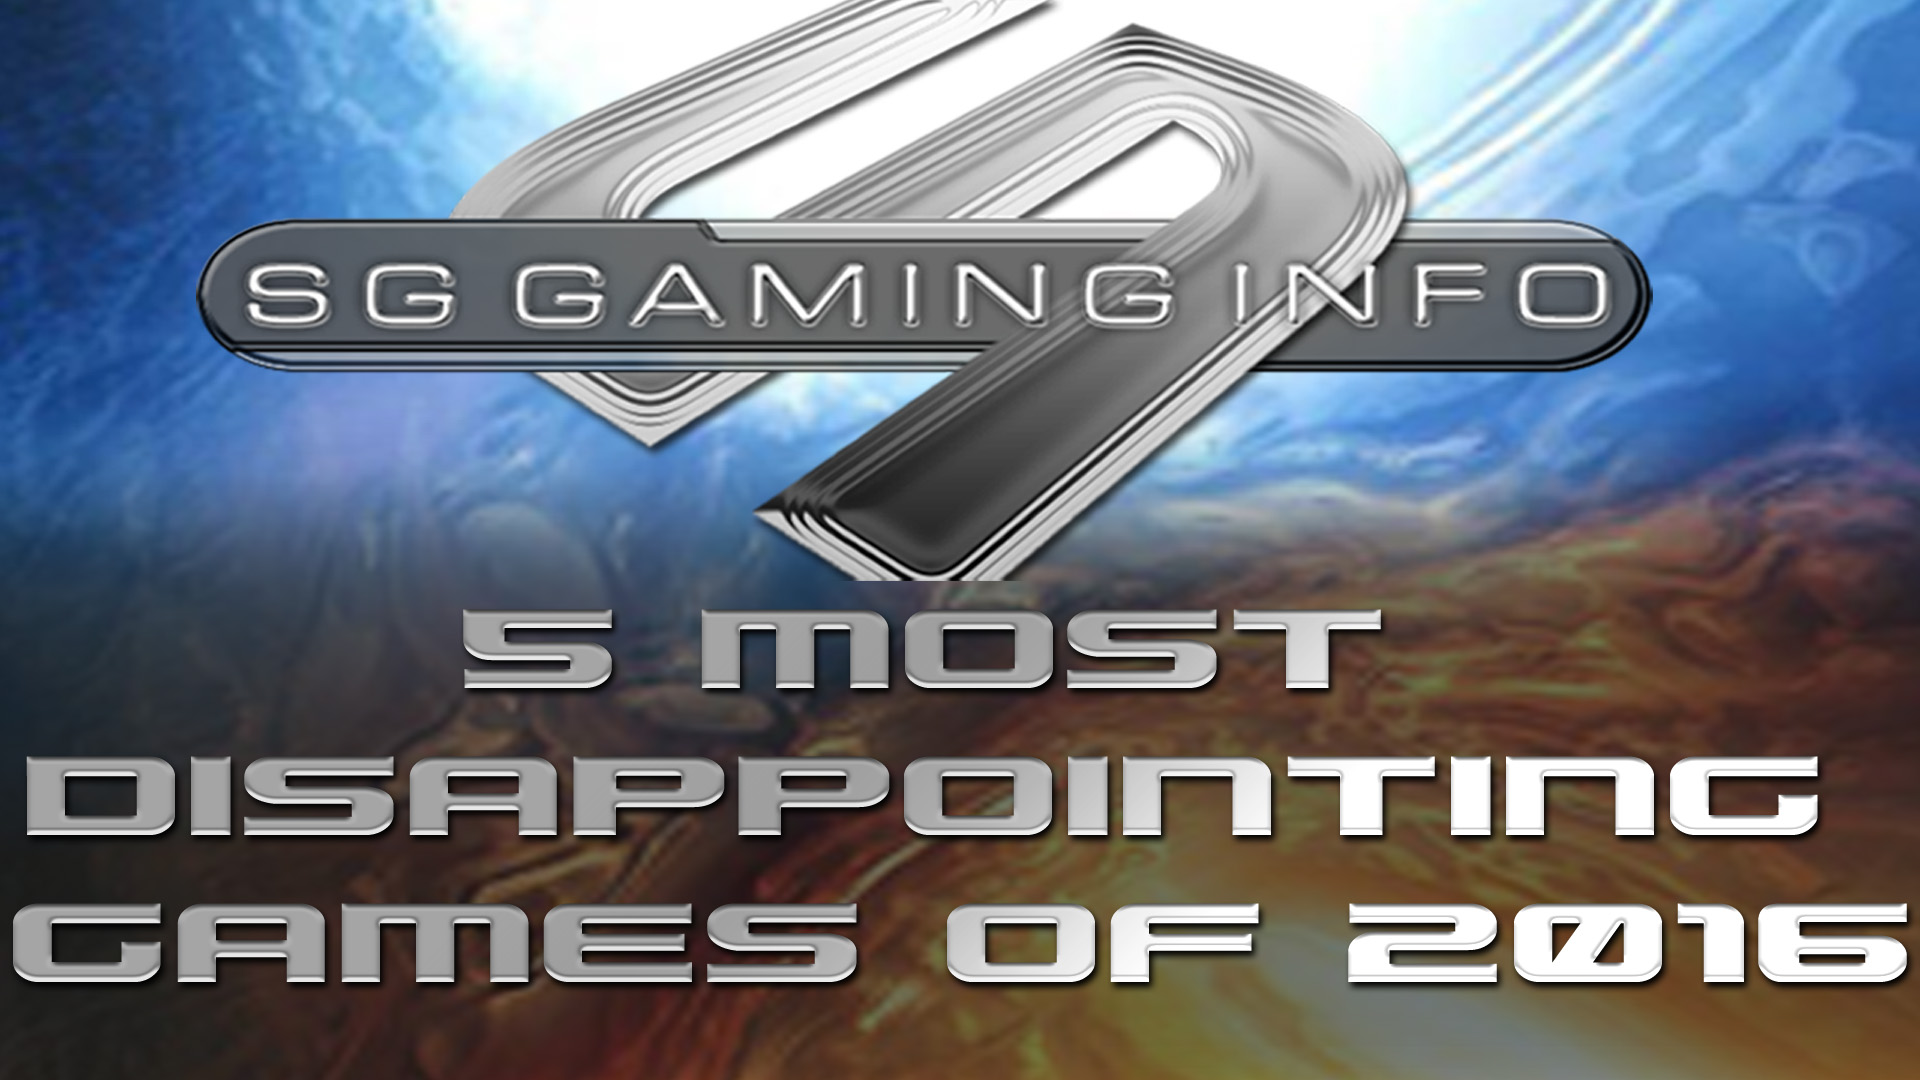 5-most-disappointing-games-of-2016